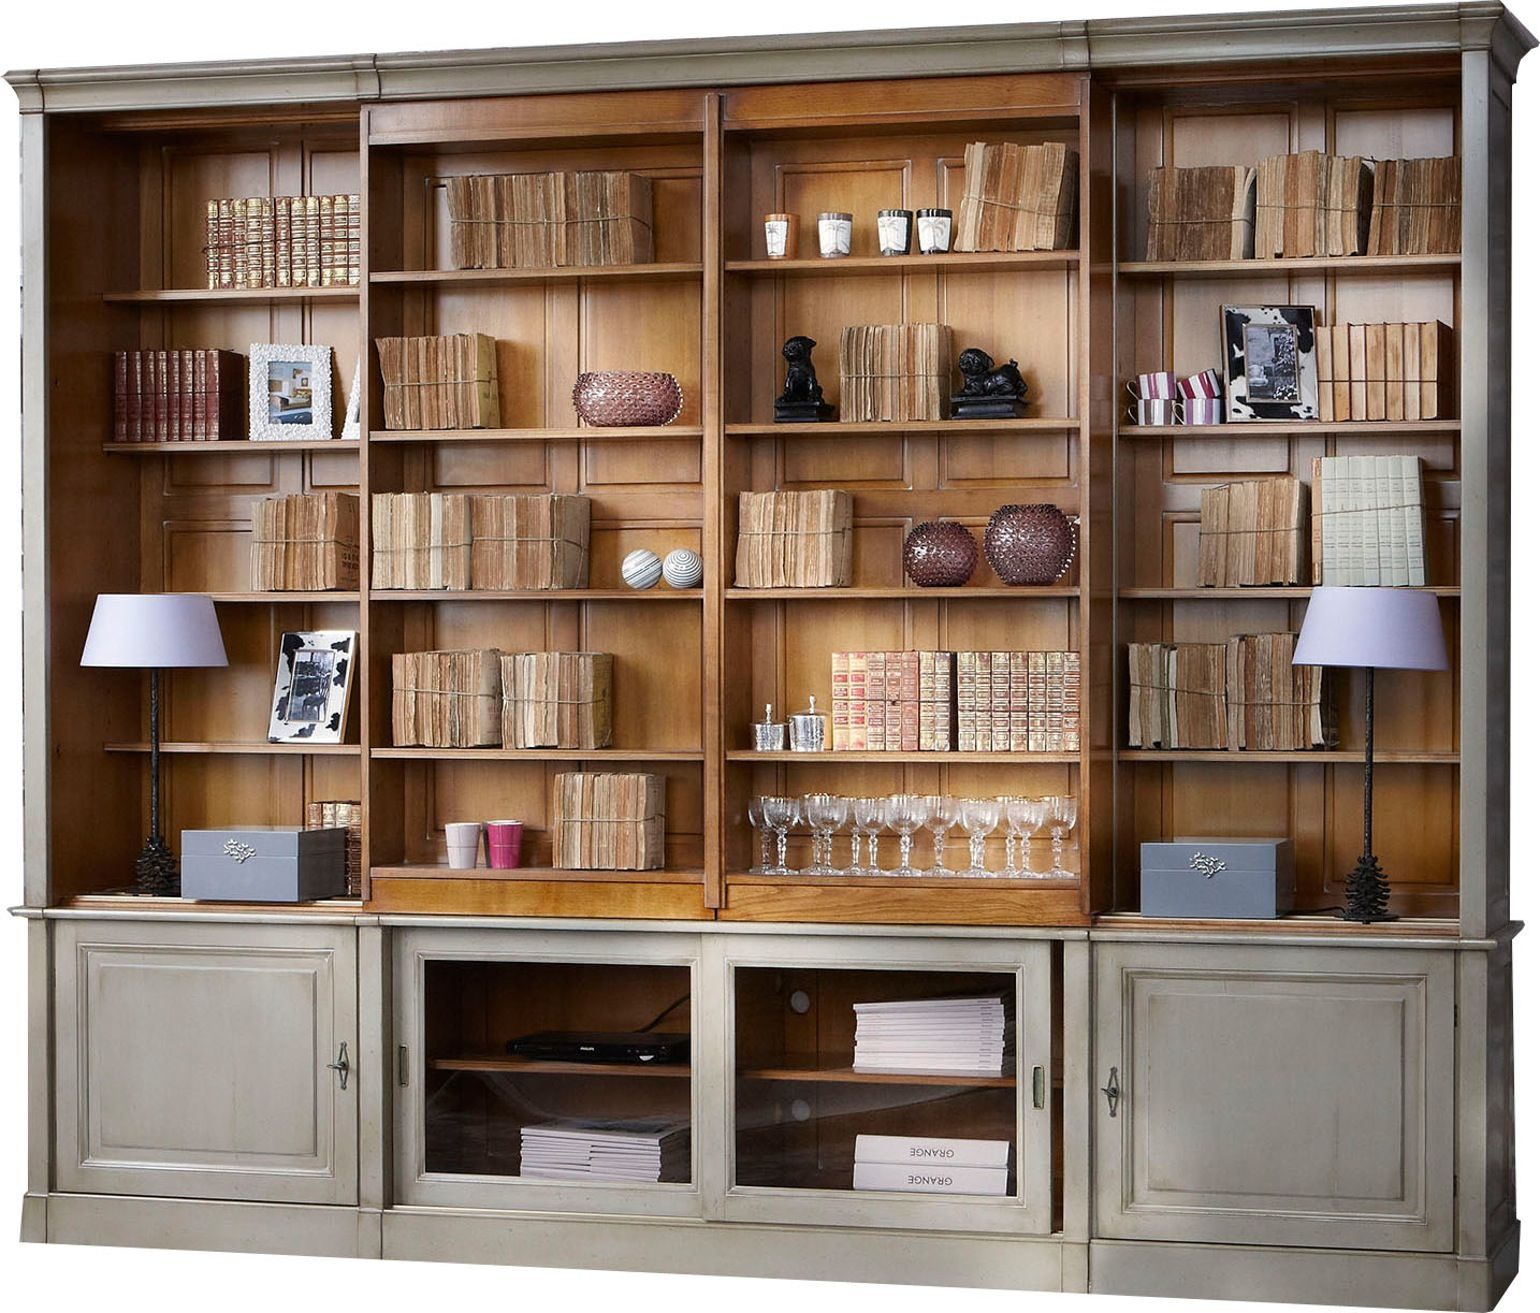 library company gallery bookcases and systems murphy storage wallbed closet sliding wall portland bed custom bookcase beds